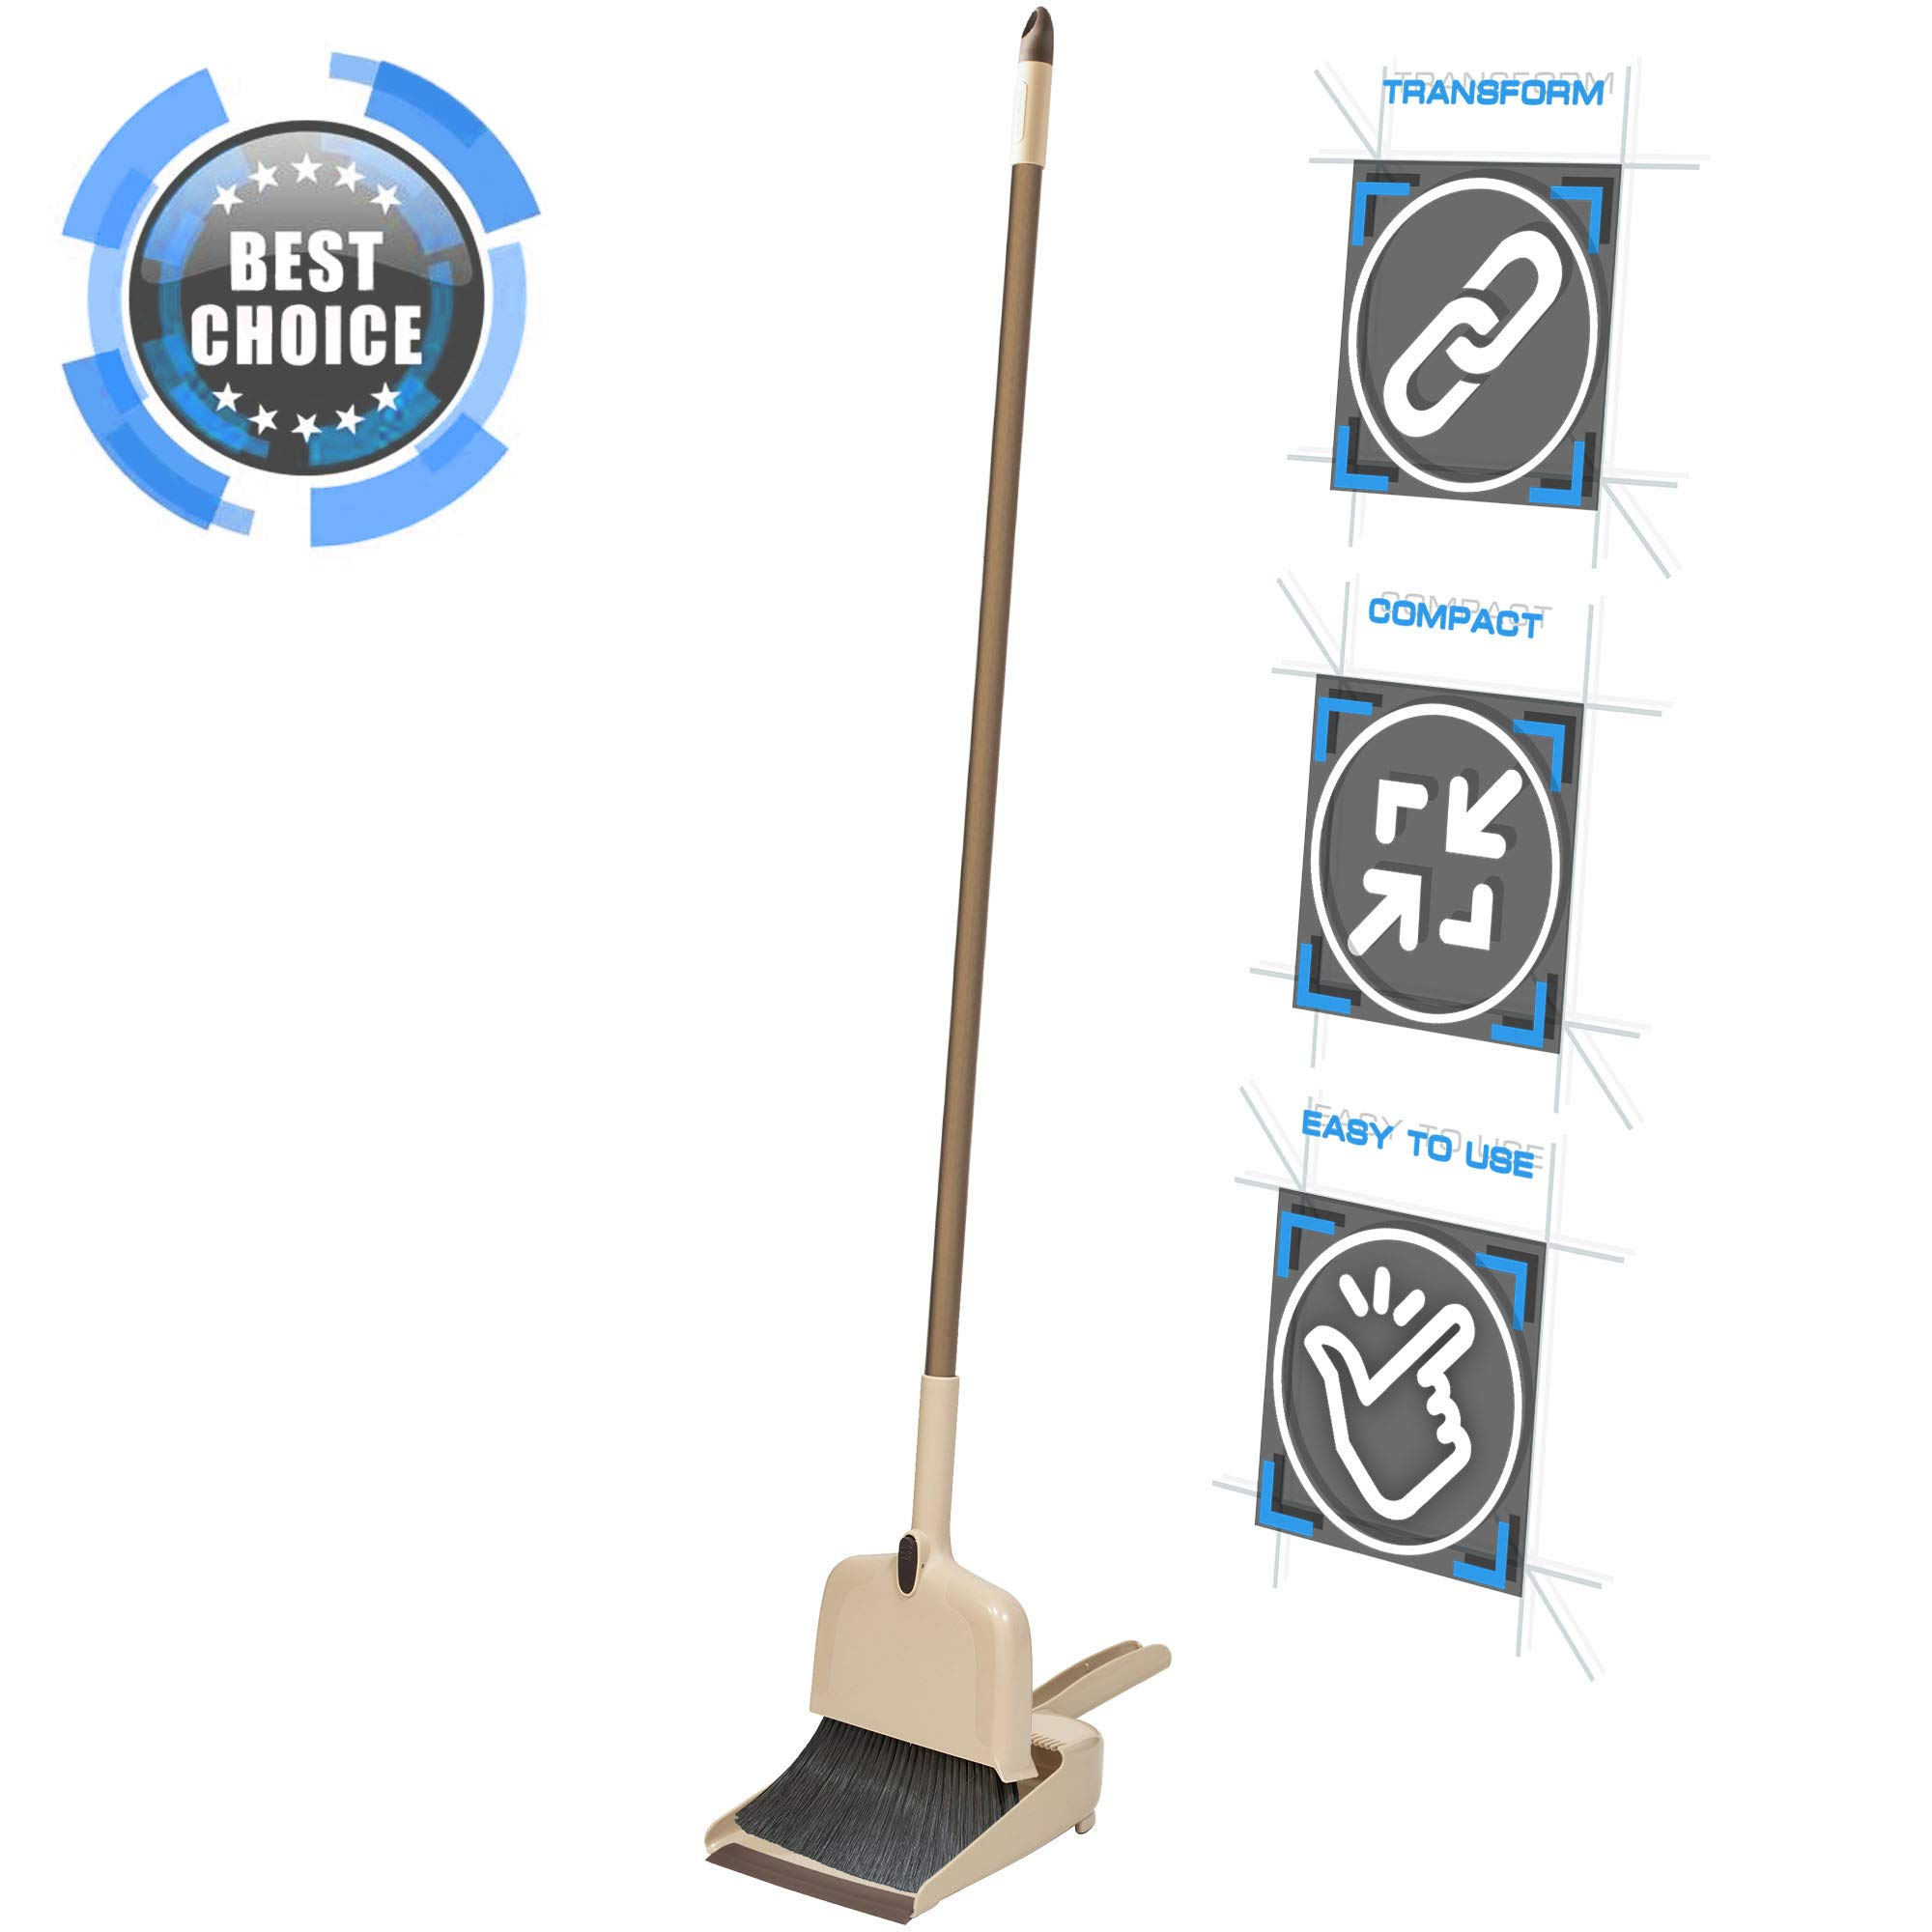 4 in 1 Broom and Dustpan Set with Stainless Handle for Floor and Ceiling. Improved Easy Cleaning. Scraper & Floor Squeegee.